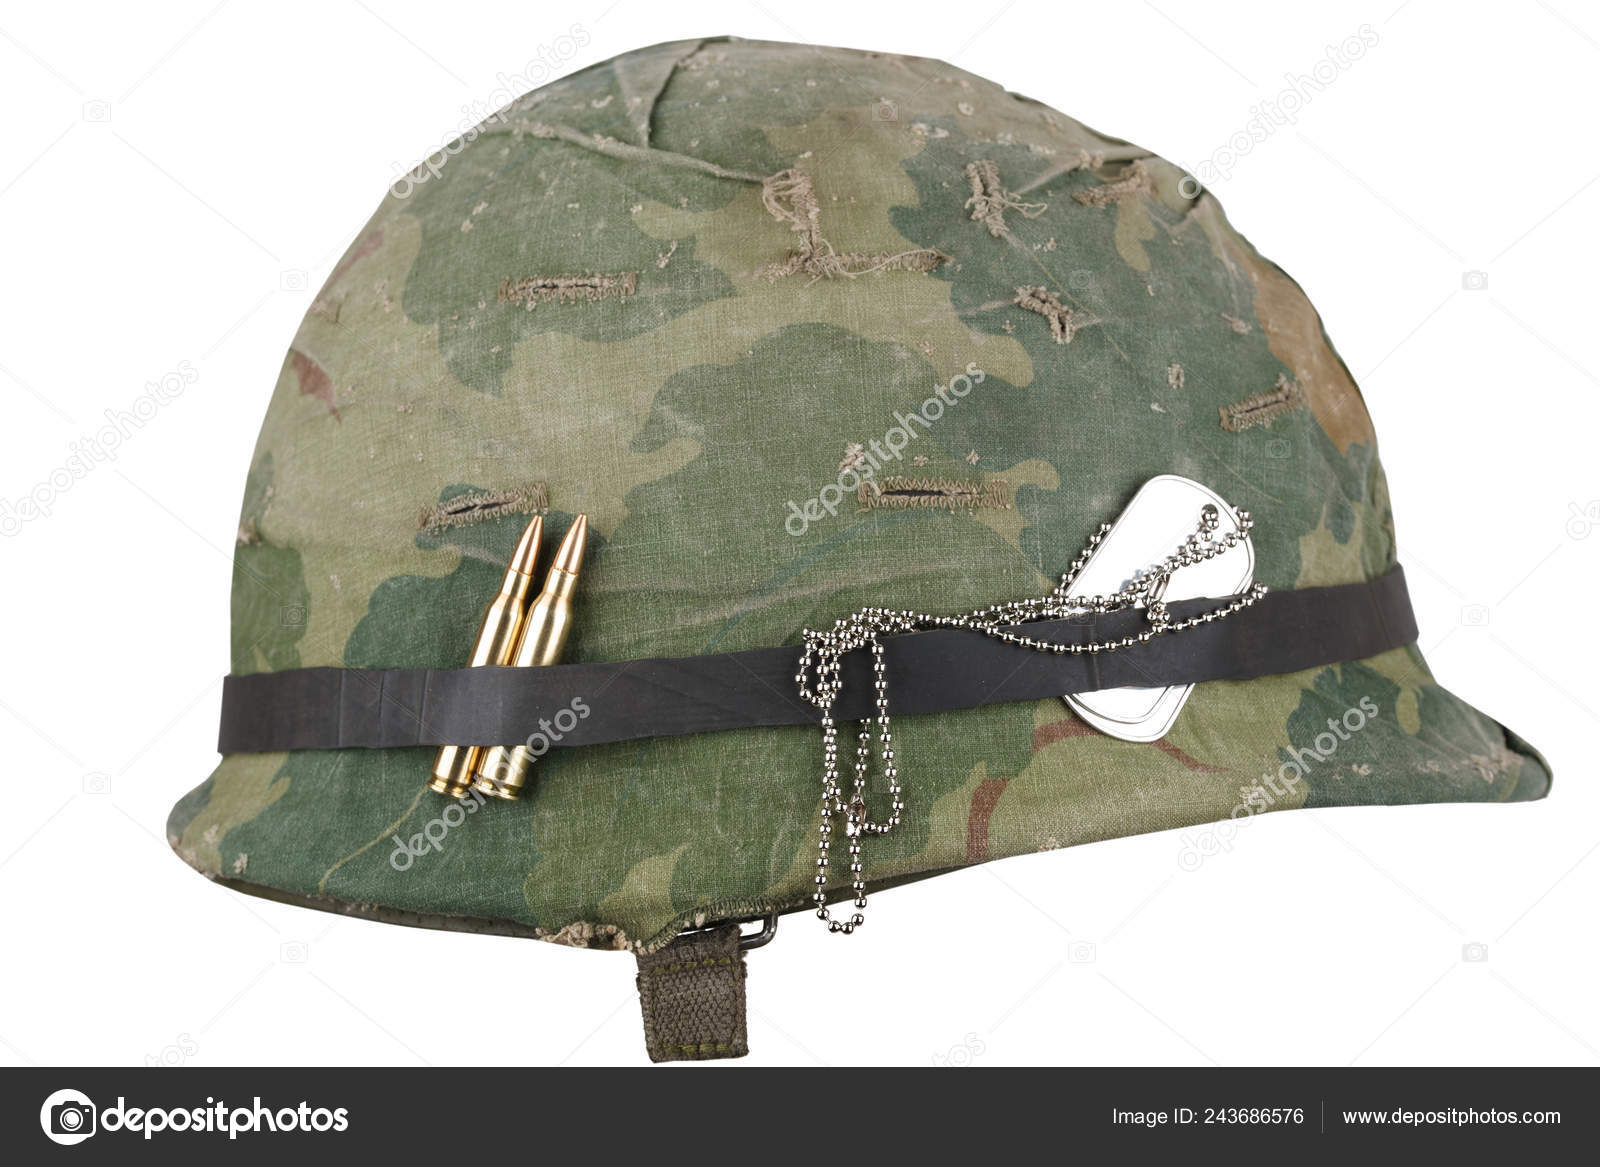 Army Helmet Vietnam War Period Camouflage Cover Goggles Dog Tags Stock Photo C Zim90 243686576